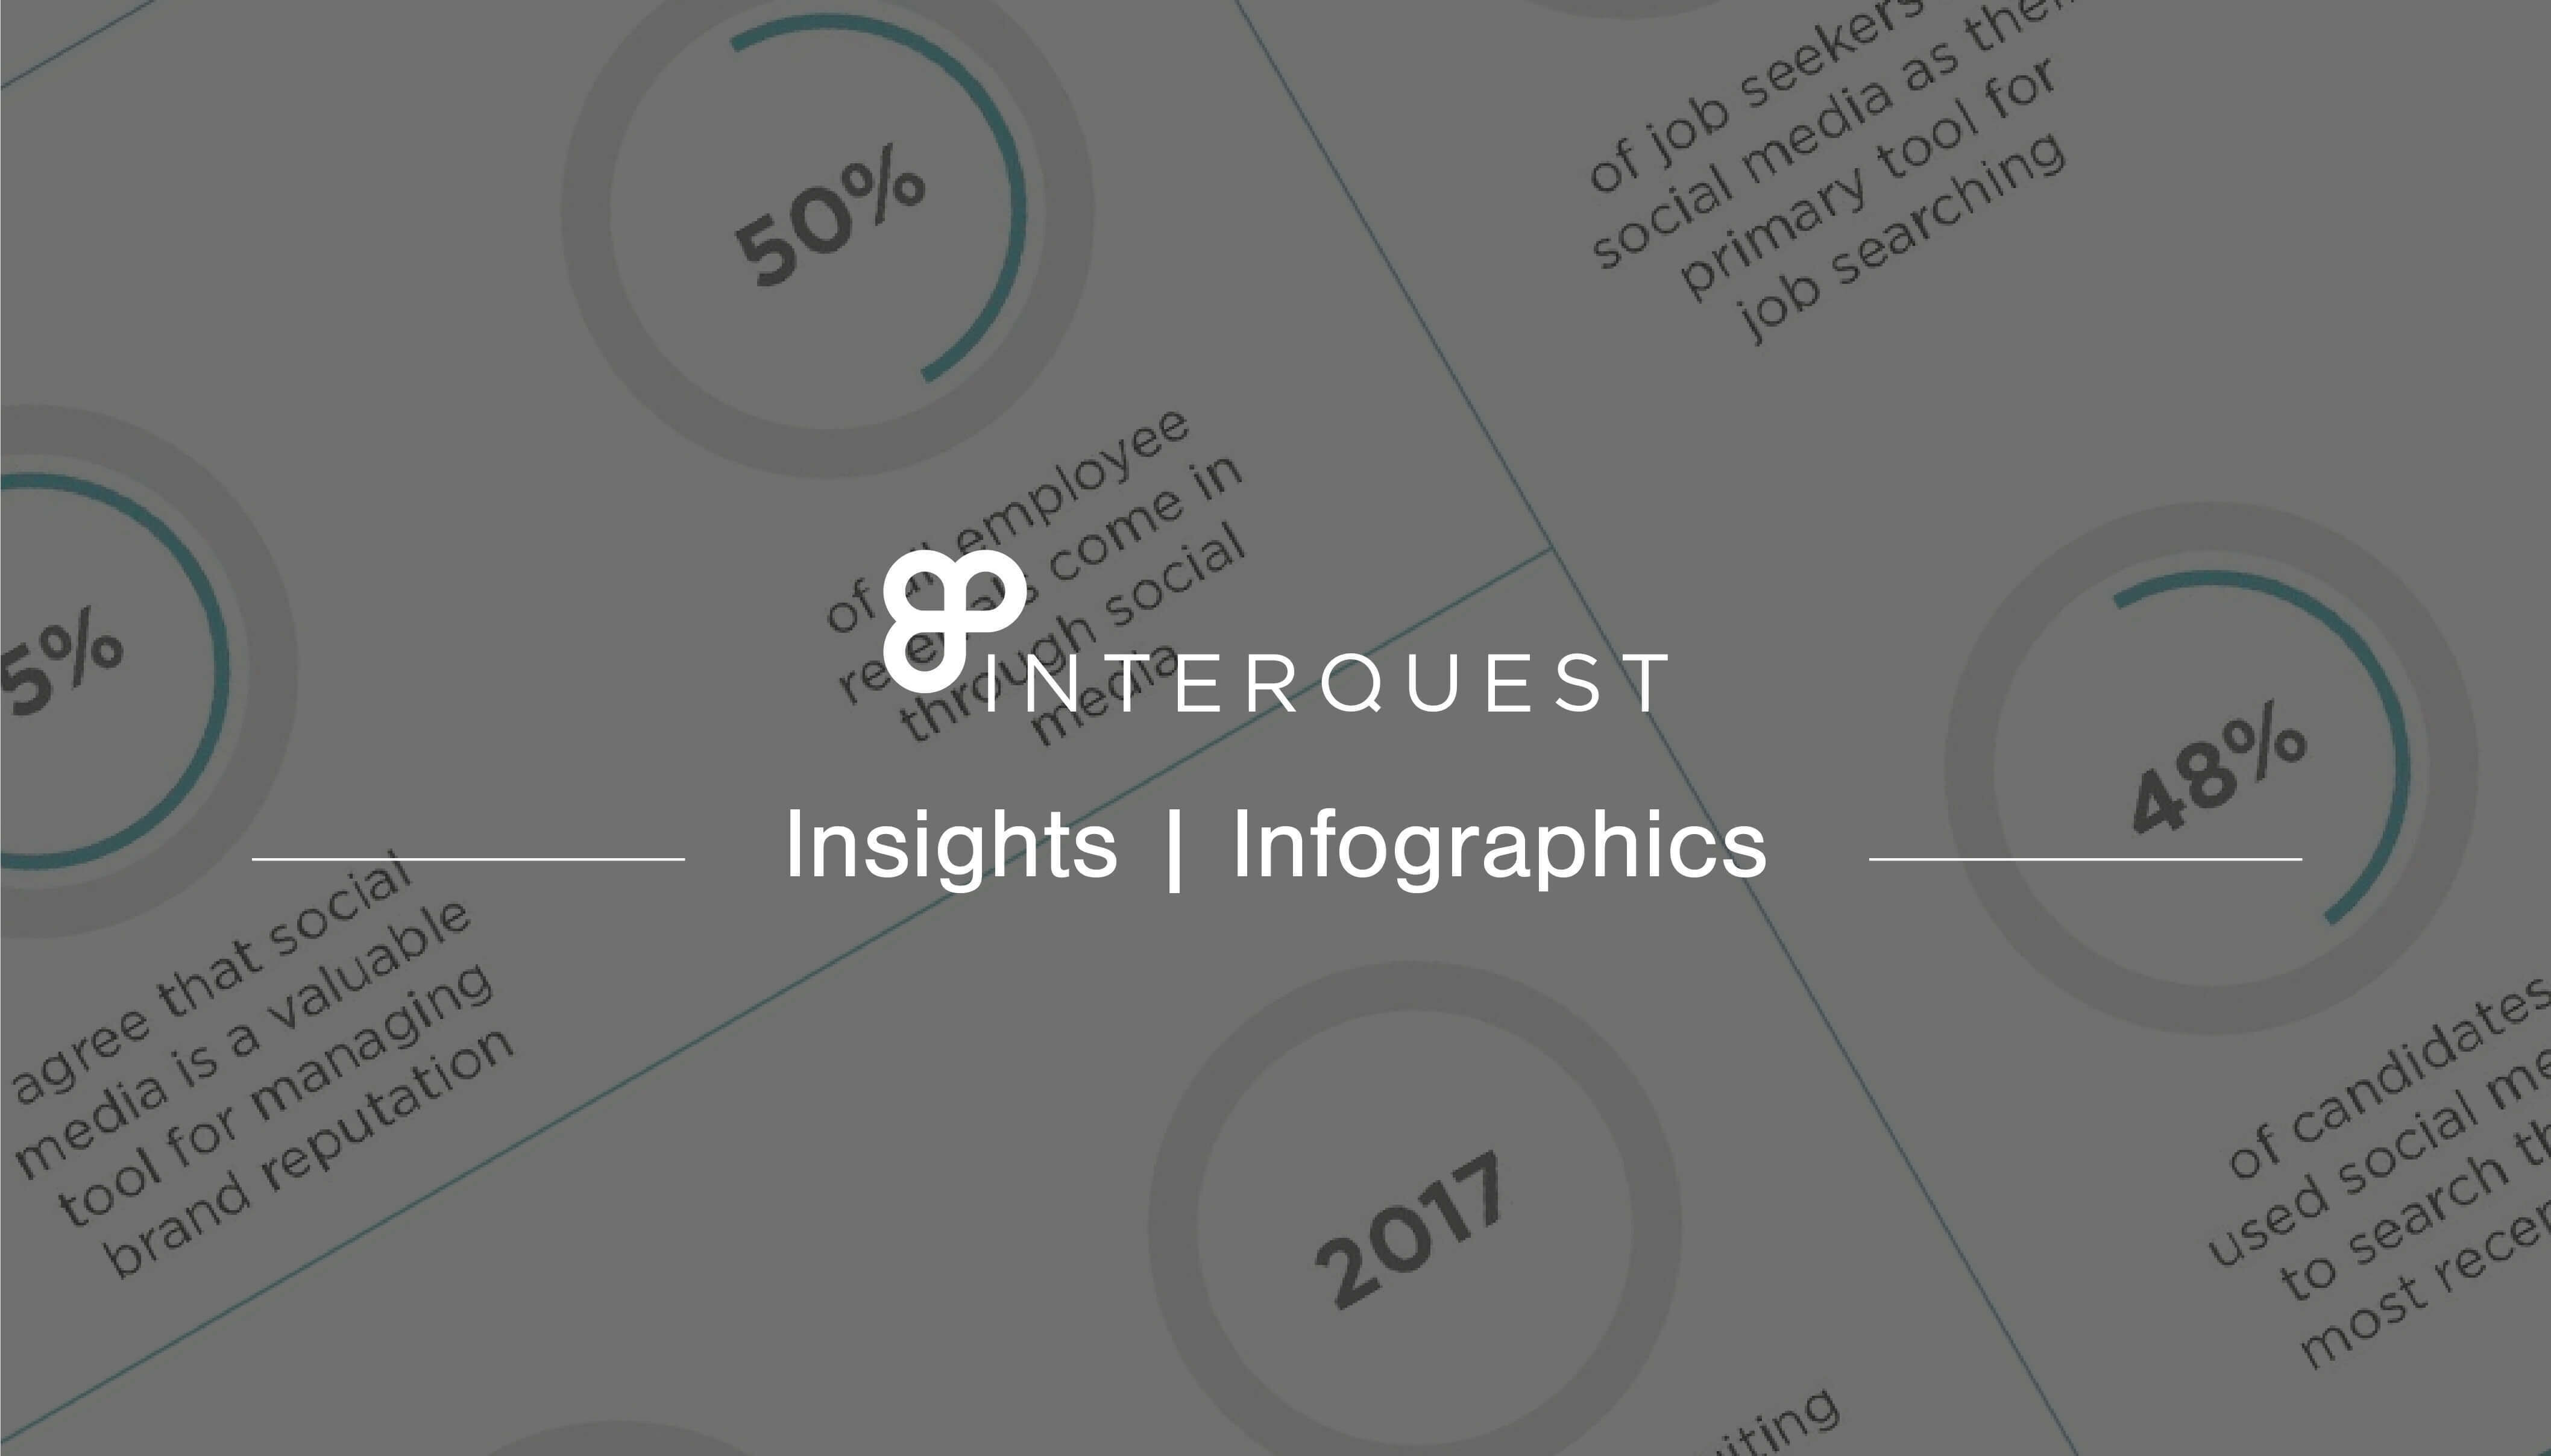 Inter Quest insights infograph bannerics